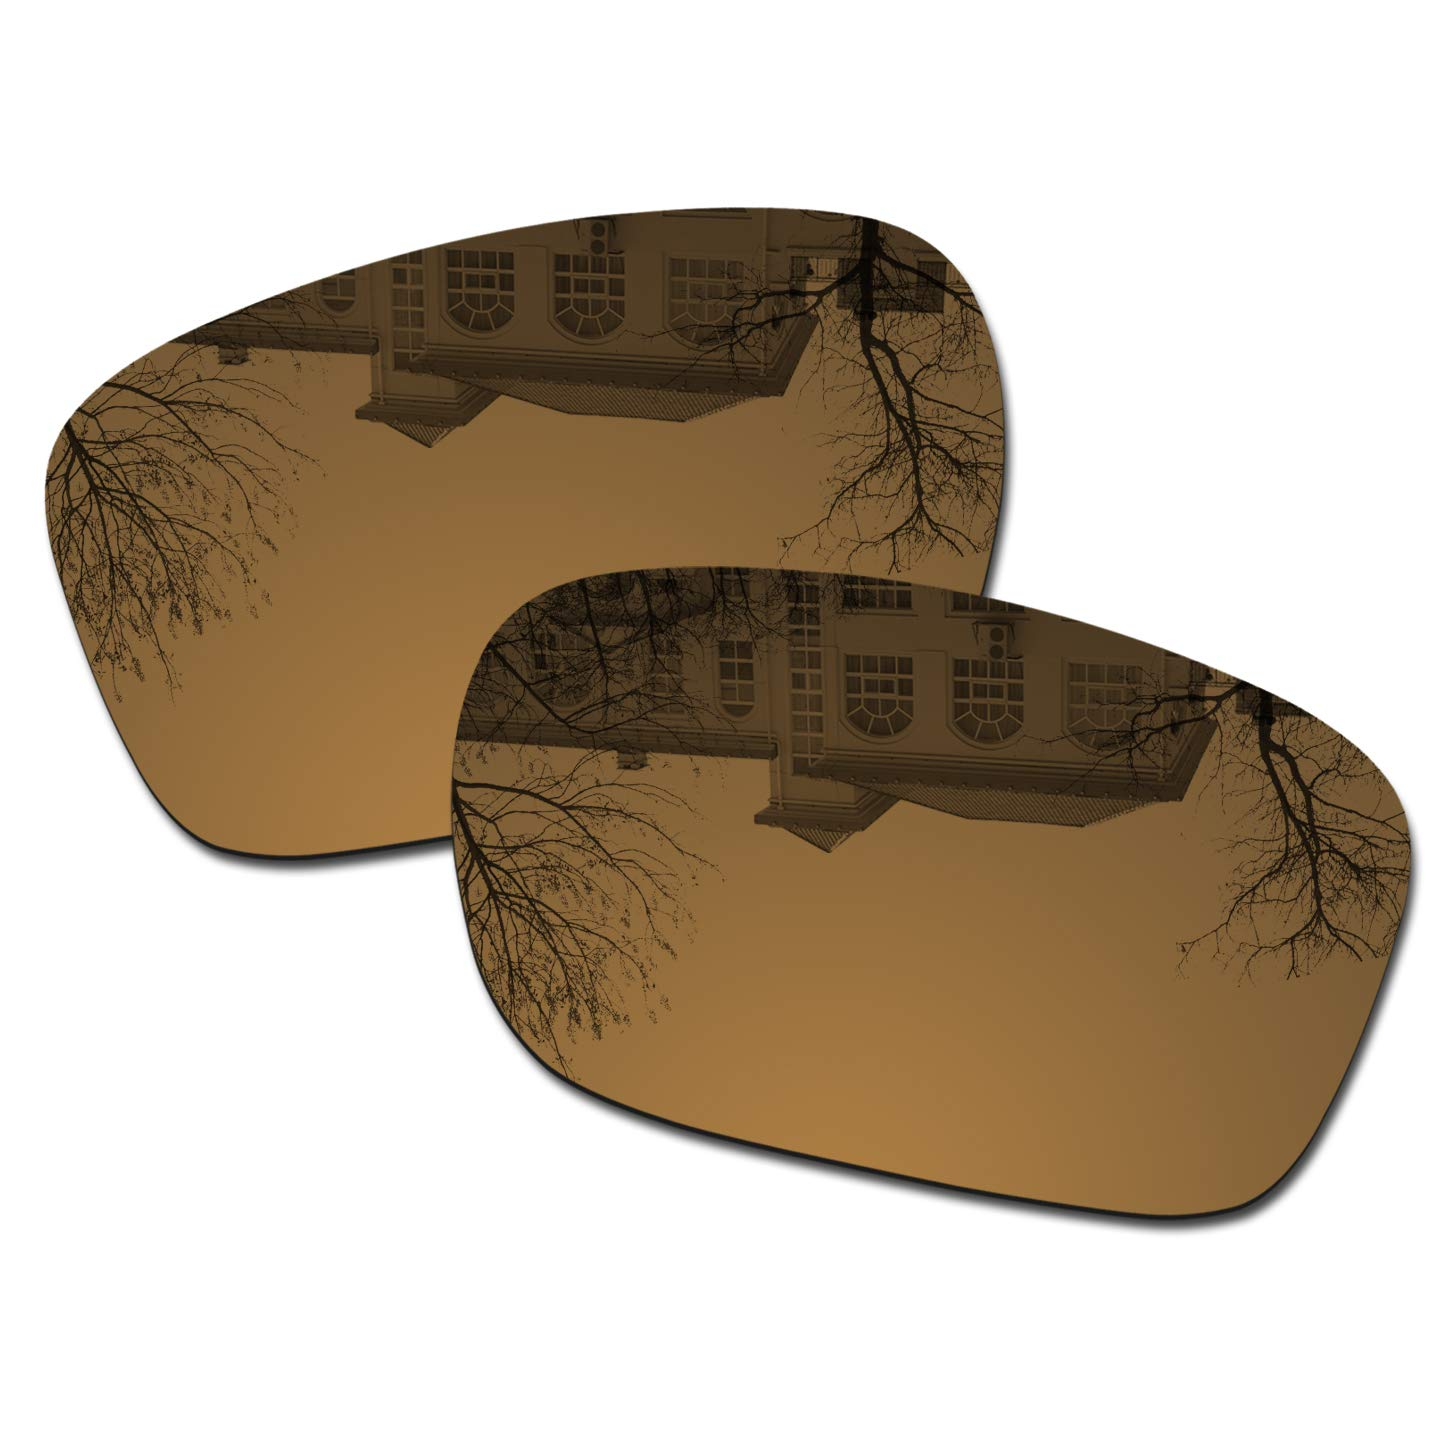 Millersawp Holbrook OO9102 Replacement Lenses Compatiable with Oakley Sunglass-Bronze Iridium by Millersawp